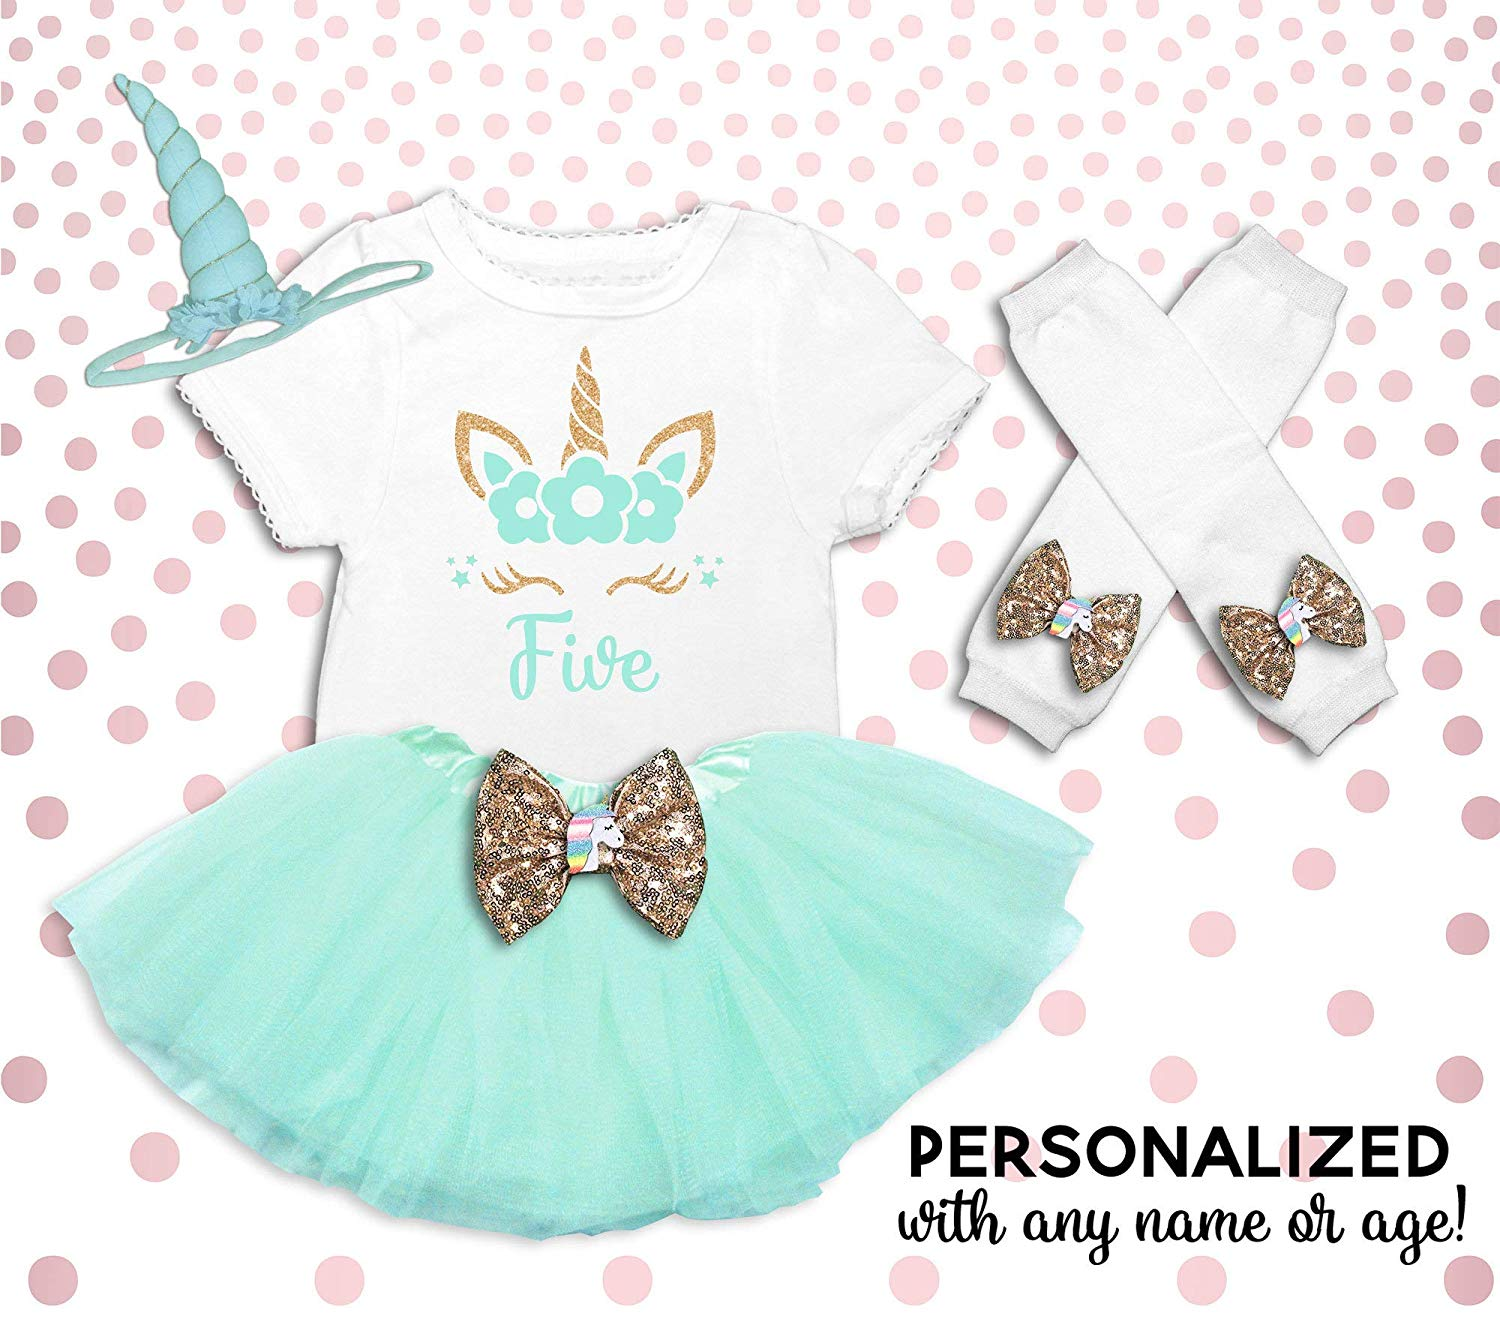 6513e6e86 Get Quotations · Unicorn 5th Birthday Outfit Girl Unicorn Birthday Shirt  Unicorn Birthday Outfit Unicorn 5th Birthday Tutu 5th